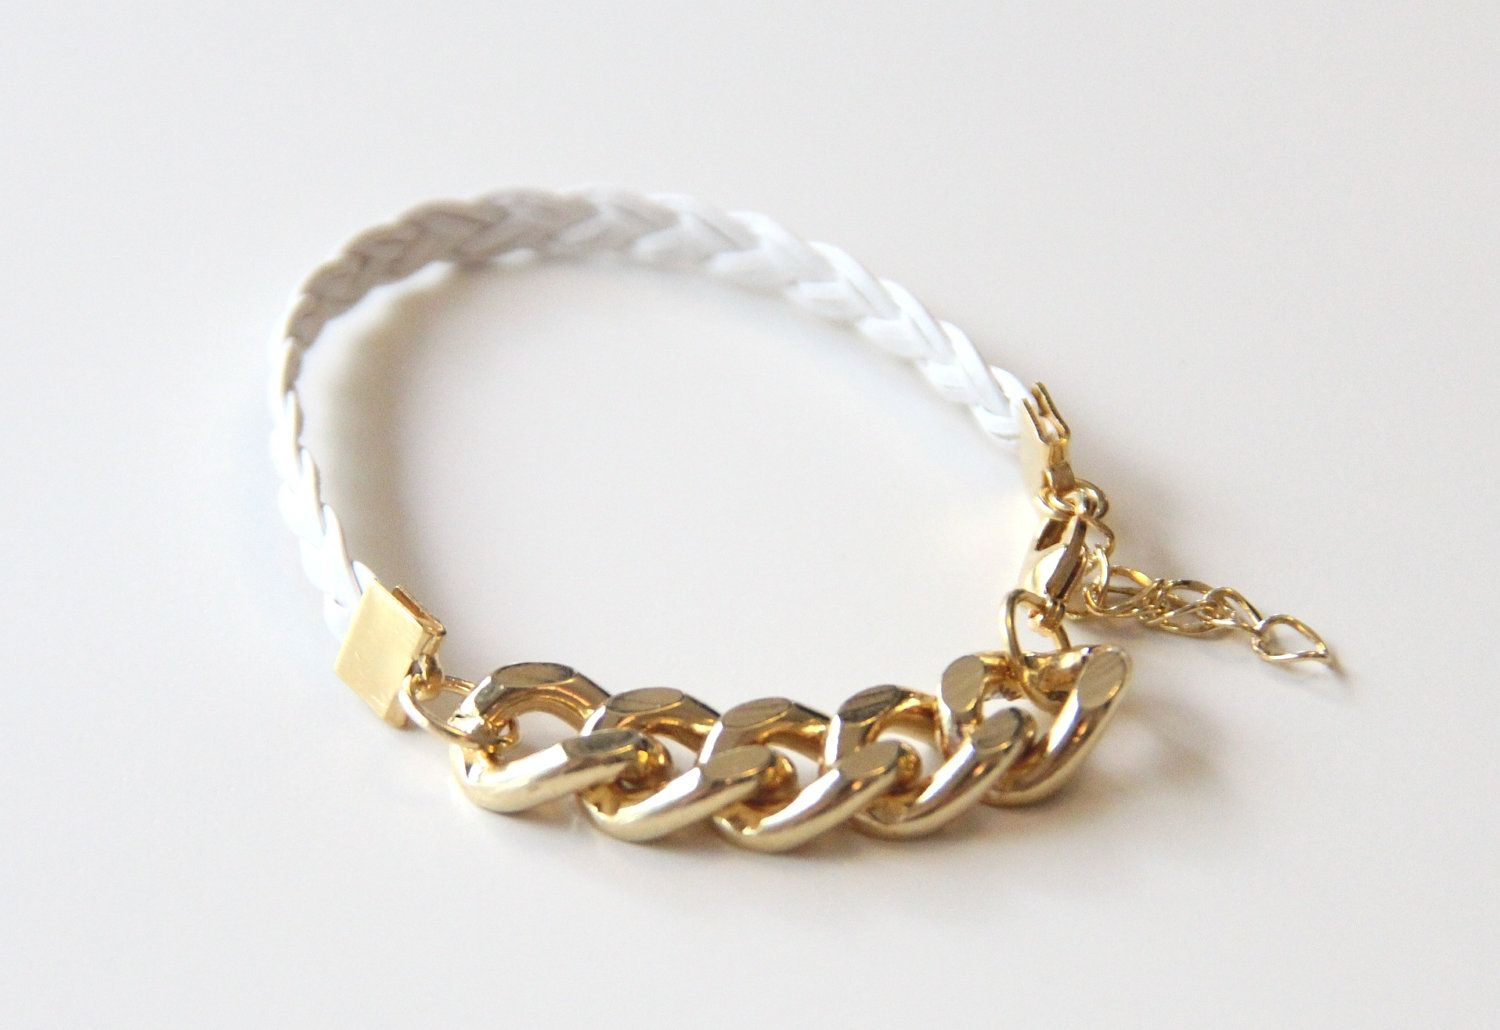 On sale arm candy gold chunky chain with white leather braid